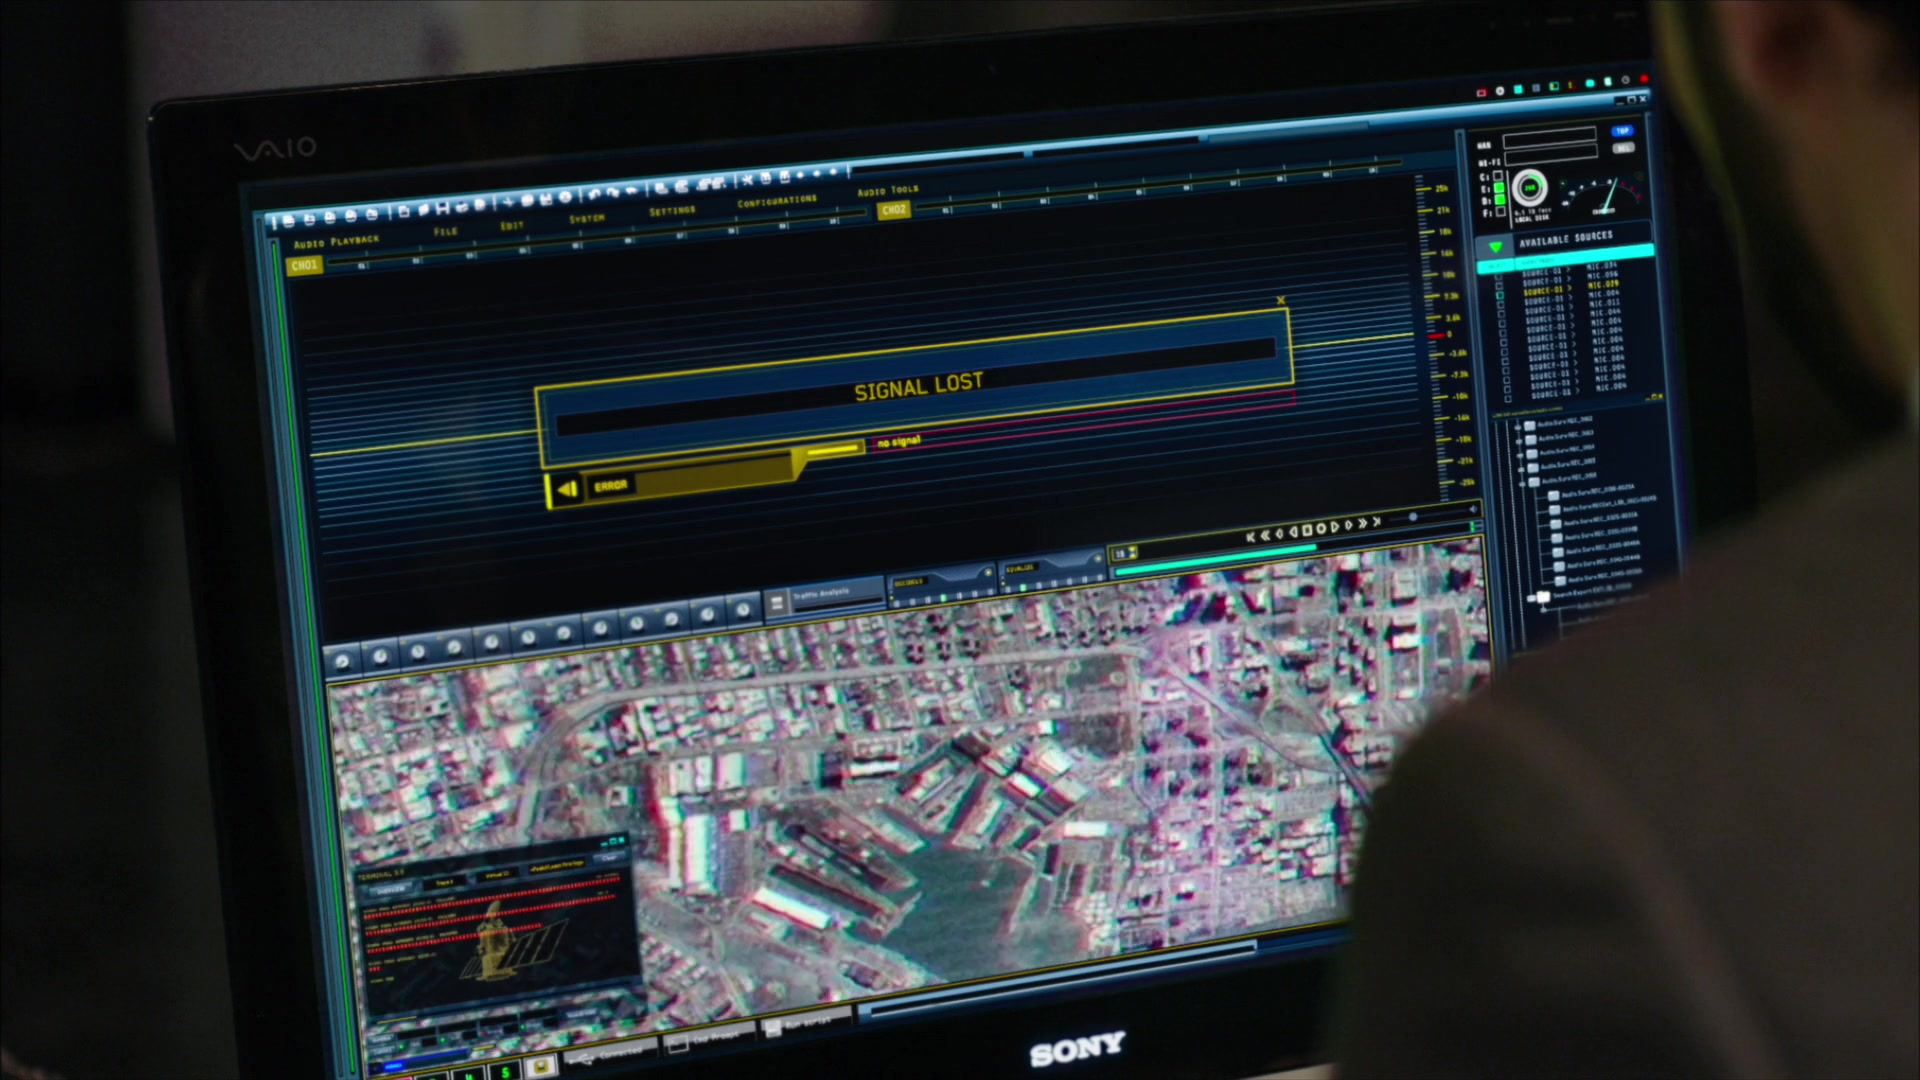 Sony Vaio All-In One Computer in The Blacklist - Season 6